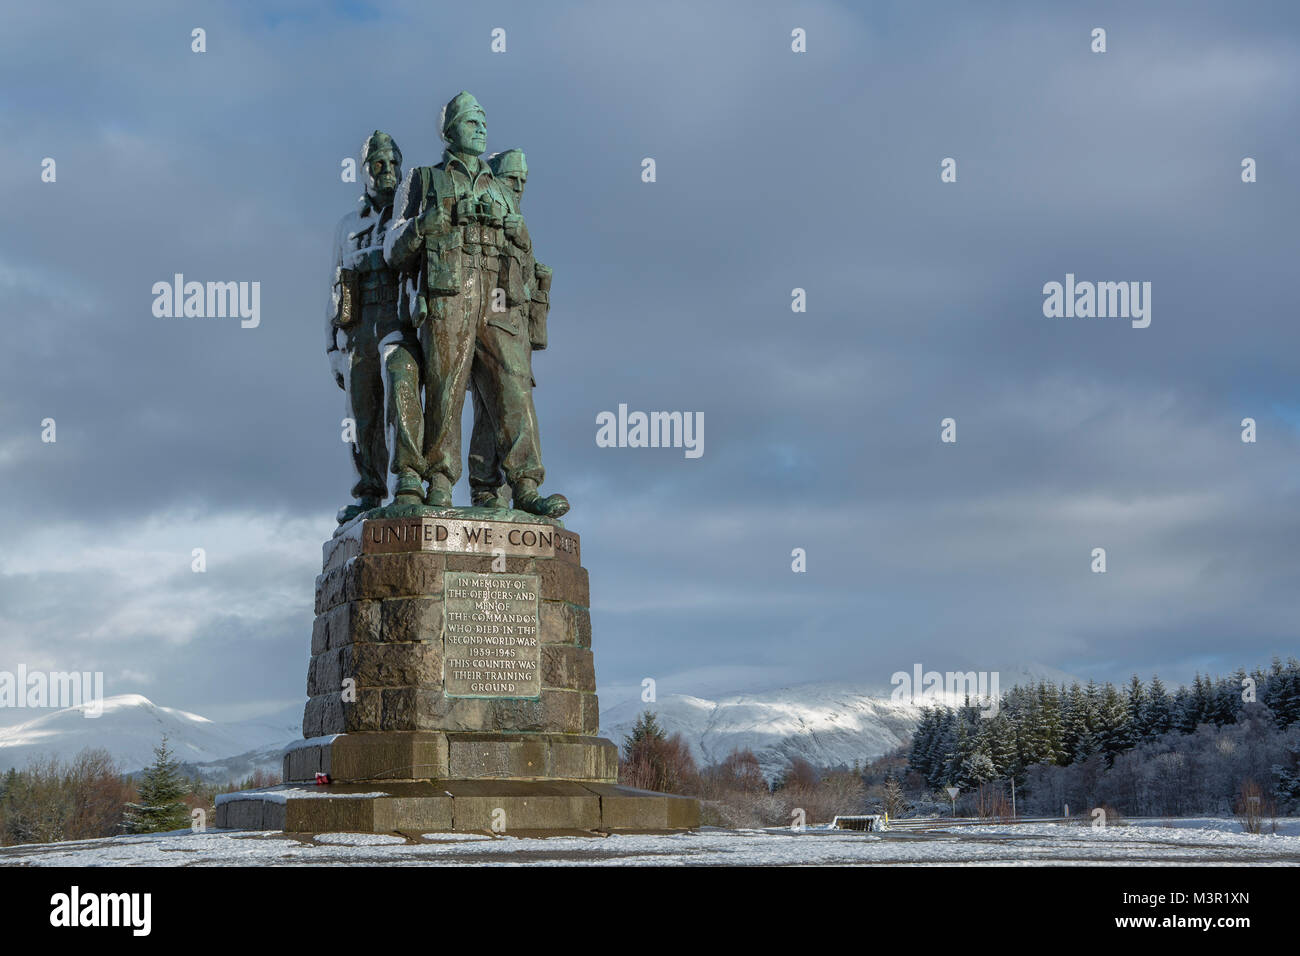 Sunrise at the Commando memorial near Spean Bridge, Scotland - Stock Image